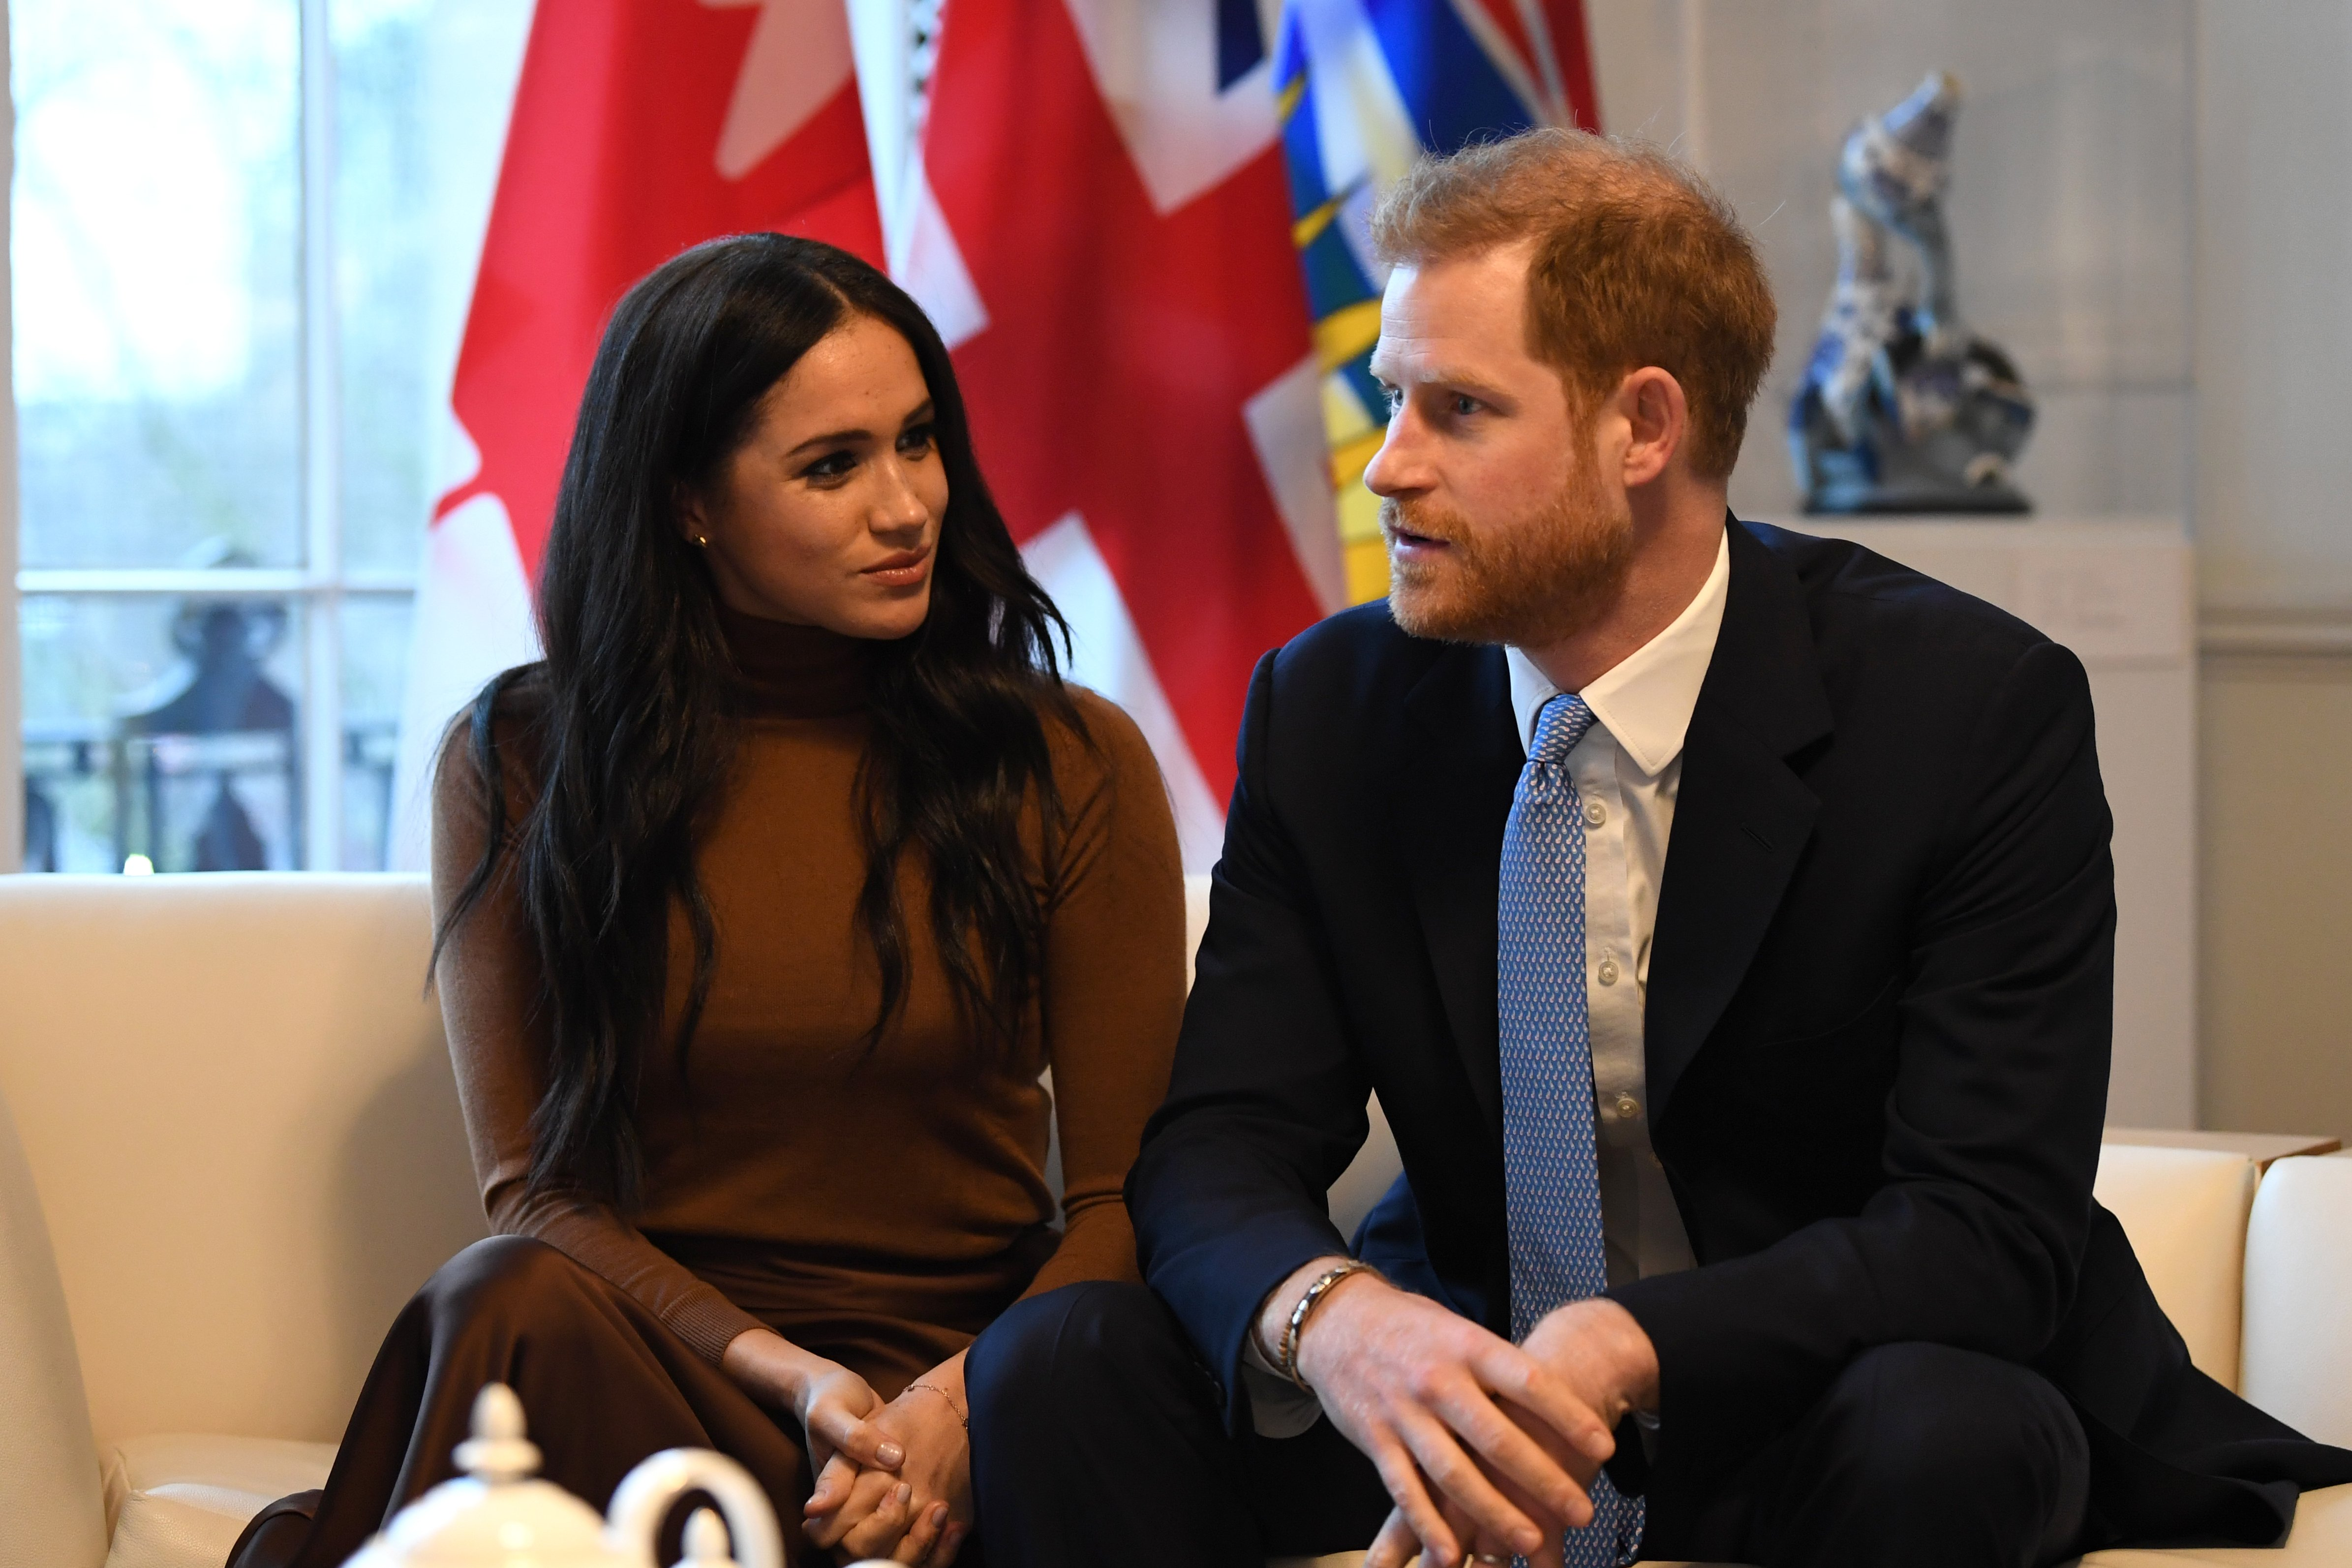 Prince Harry and Meghan at Canada House on January 7, 2020, in London, England | Photo: Getty Images